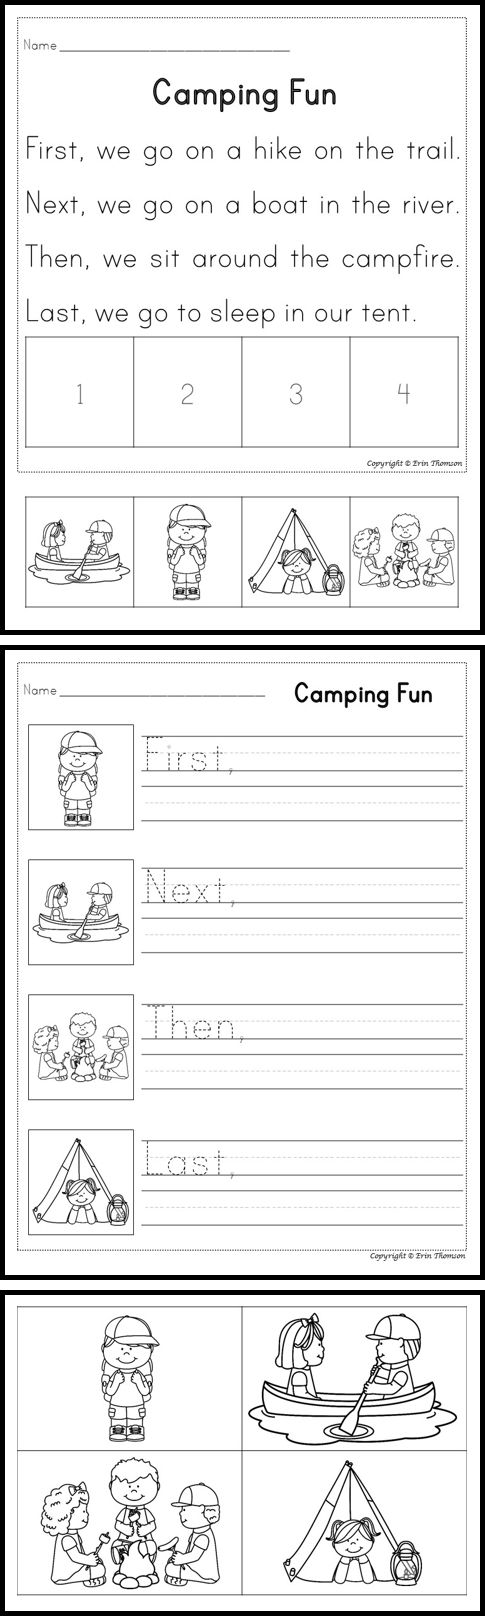 Students will sequence the camping stories using the words first, next, then, and last. There are three activities included with each sequencing story for differentiation.